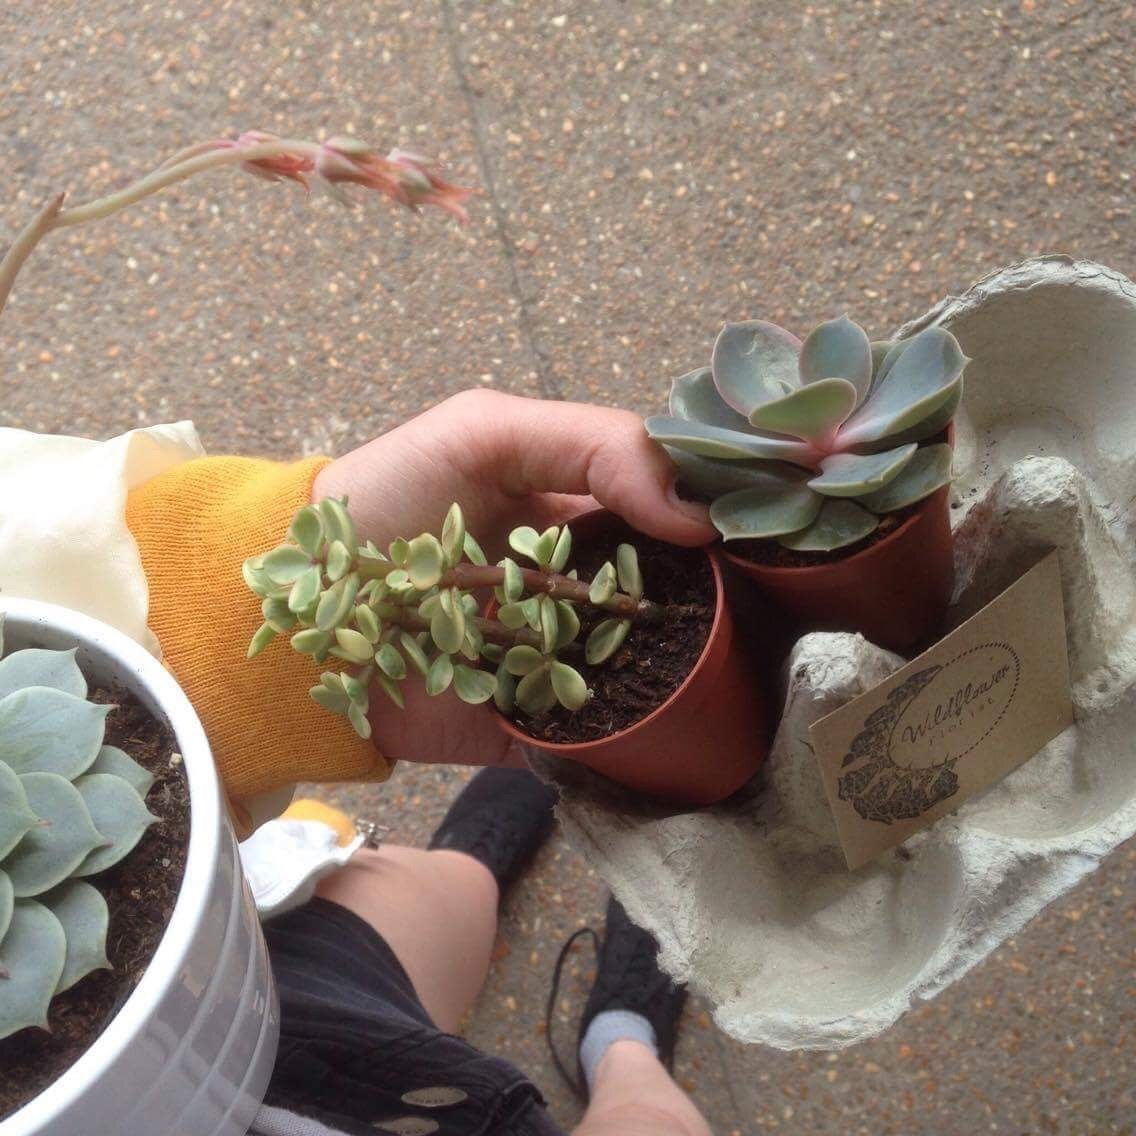 I just bought new plants today but I already want some new ones. I hate myself...